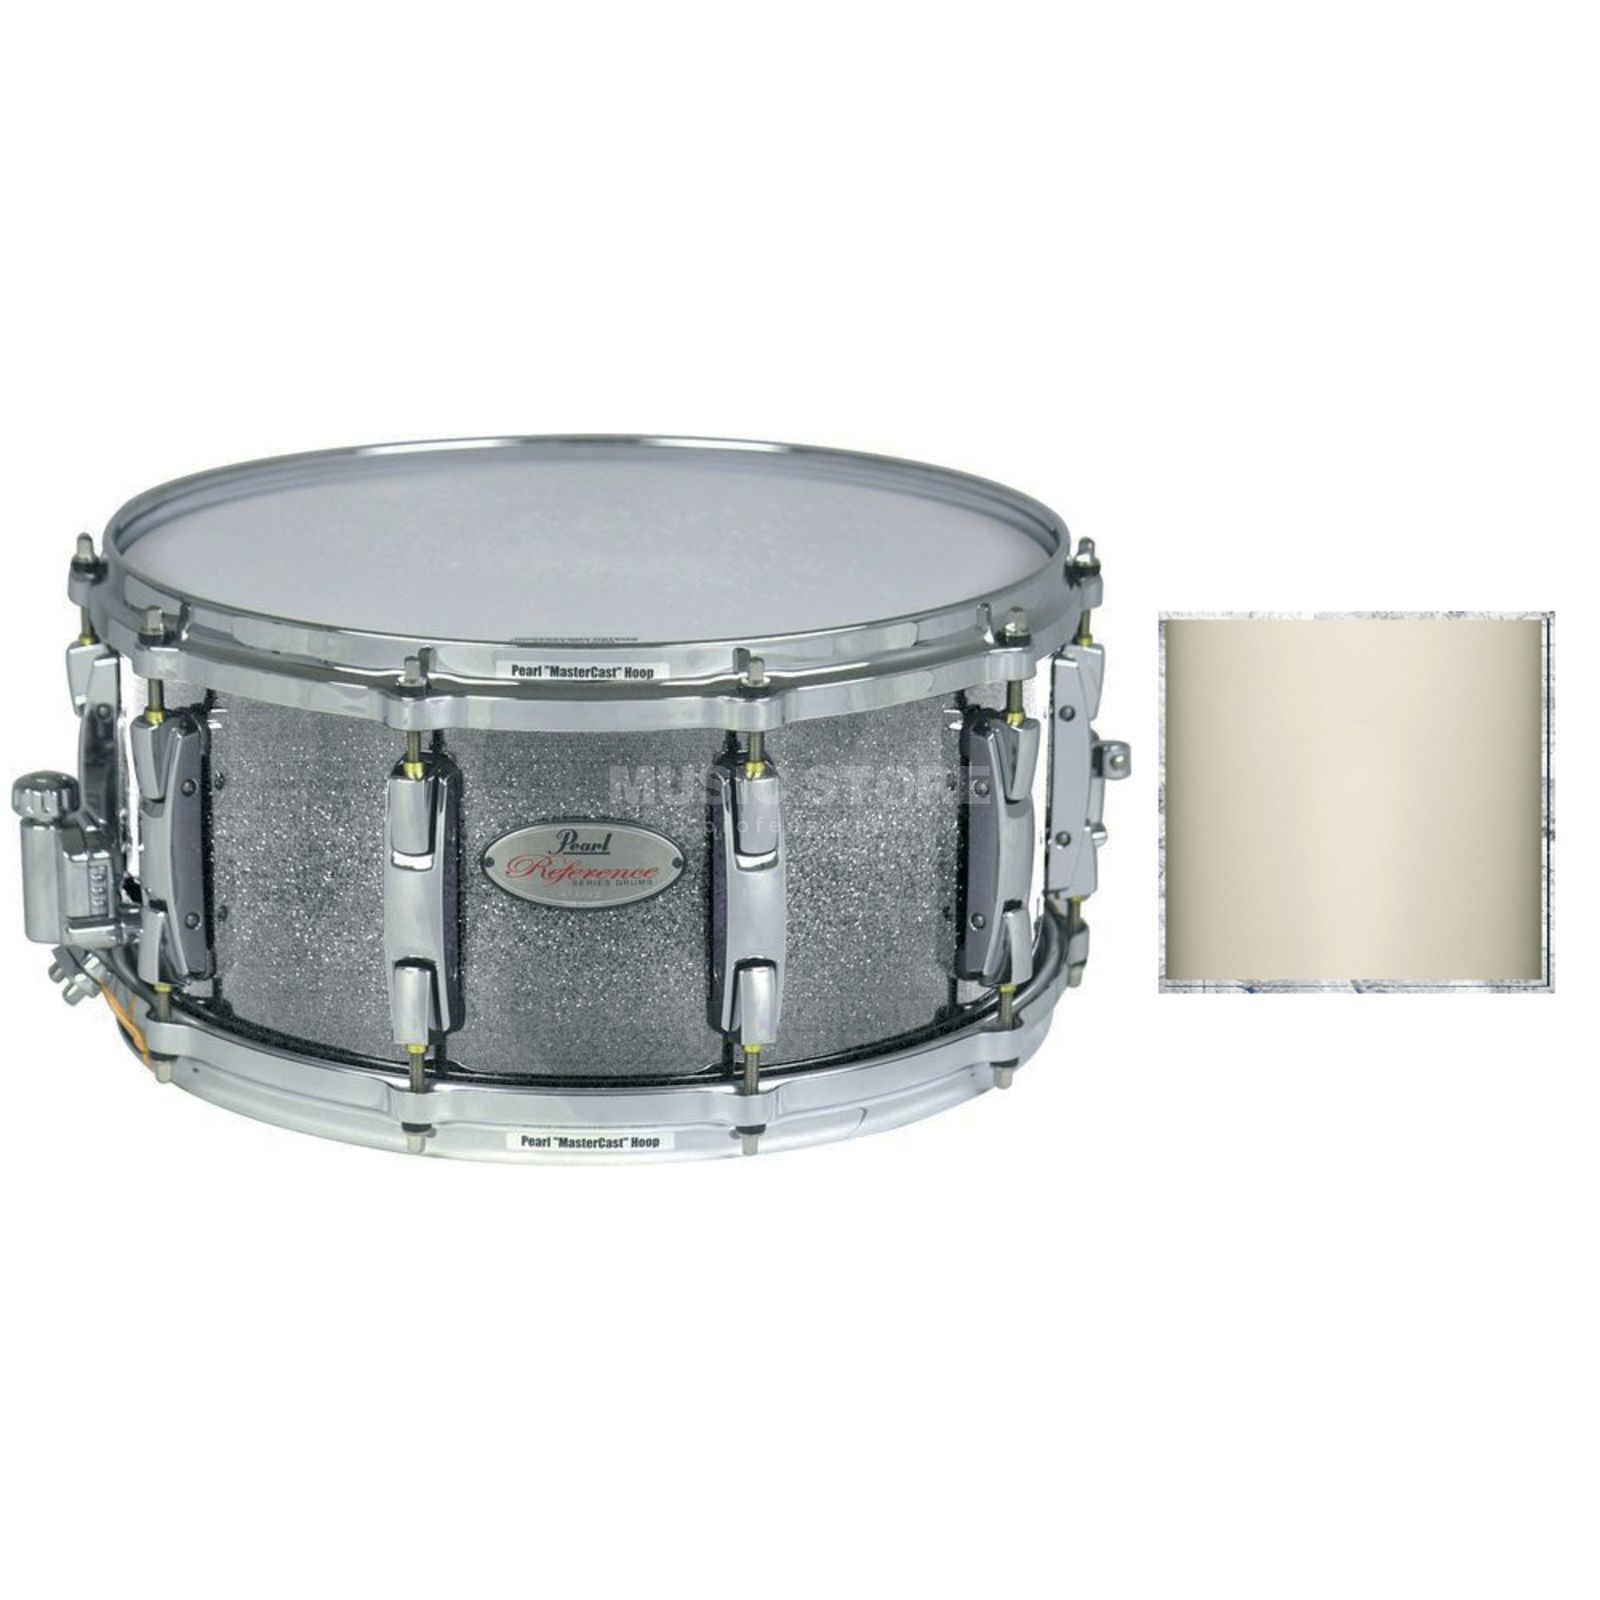 "Pearl RF1465S/C Reference Snare 14""x6.5"", Ivory Pearl #331 Produktbillede"